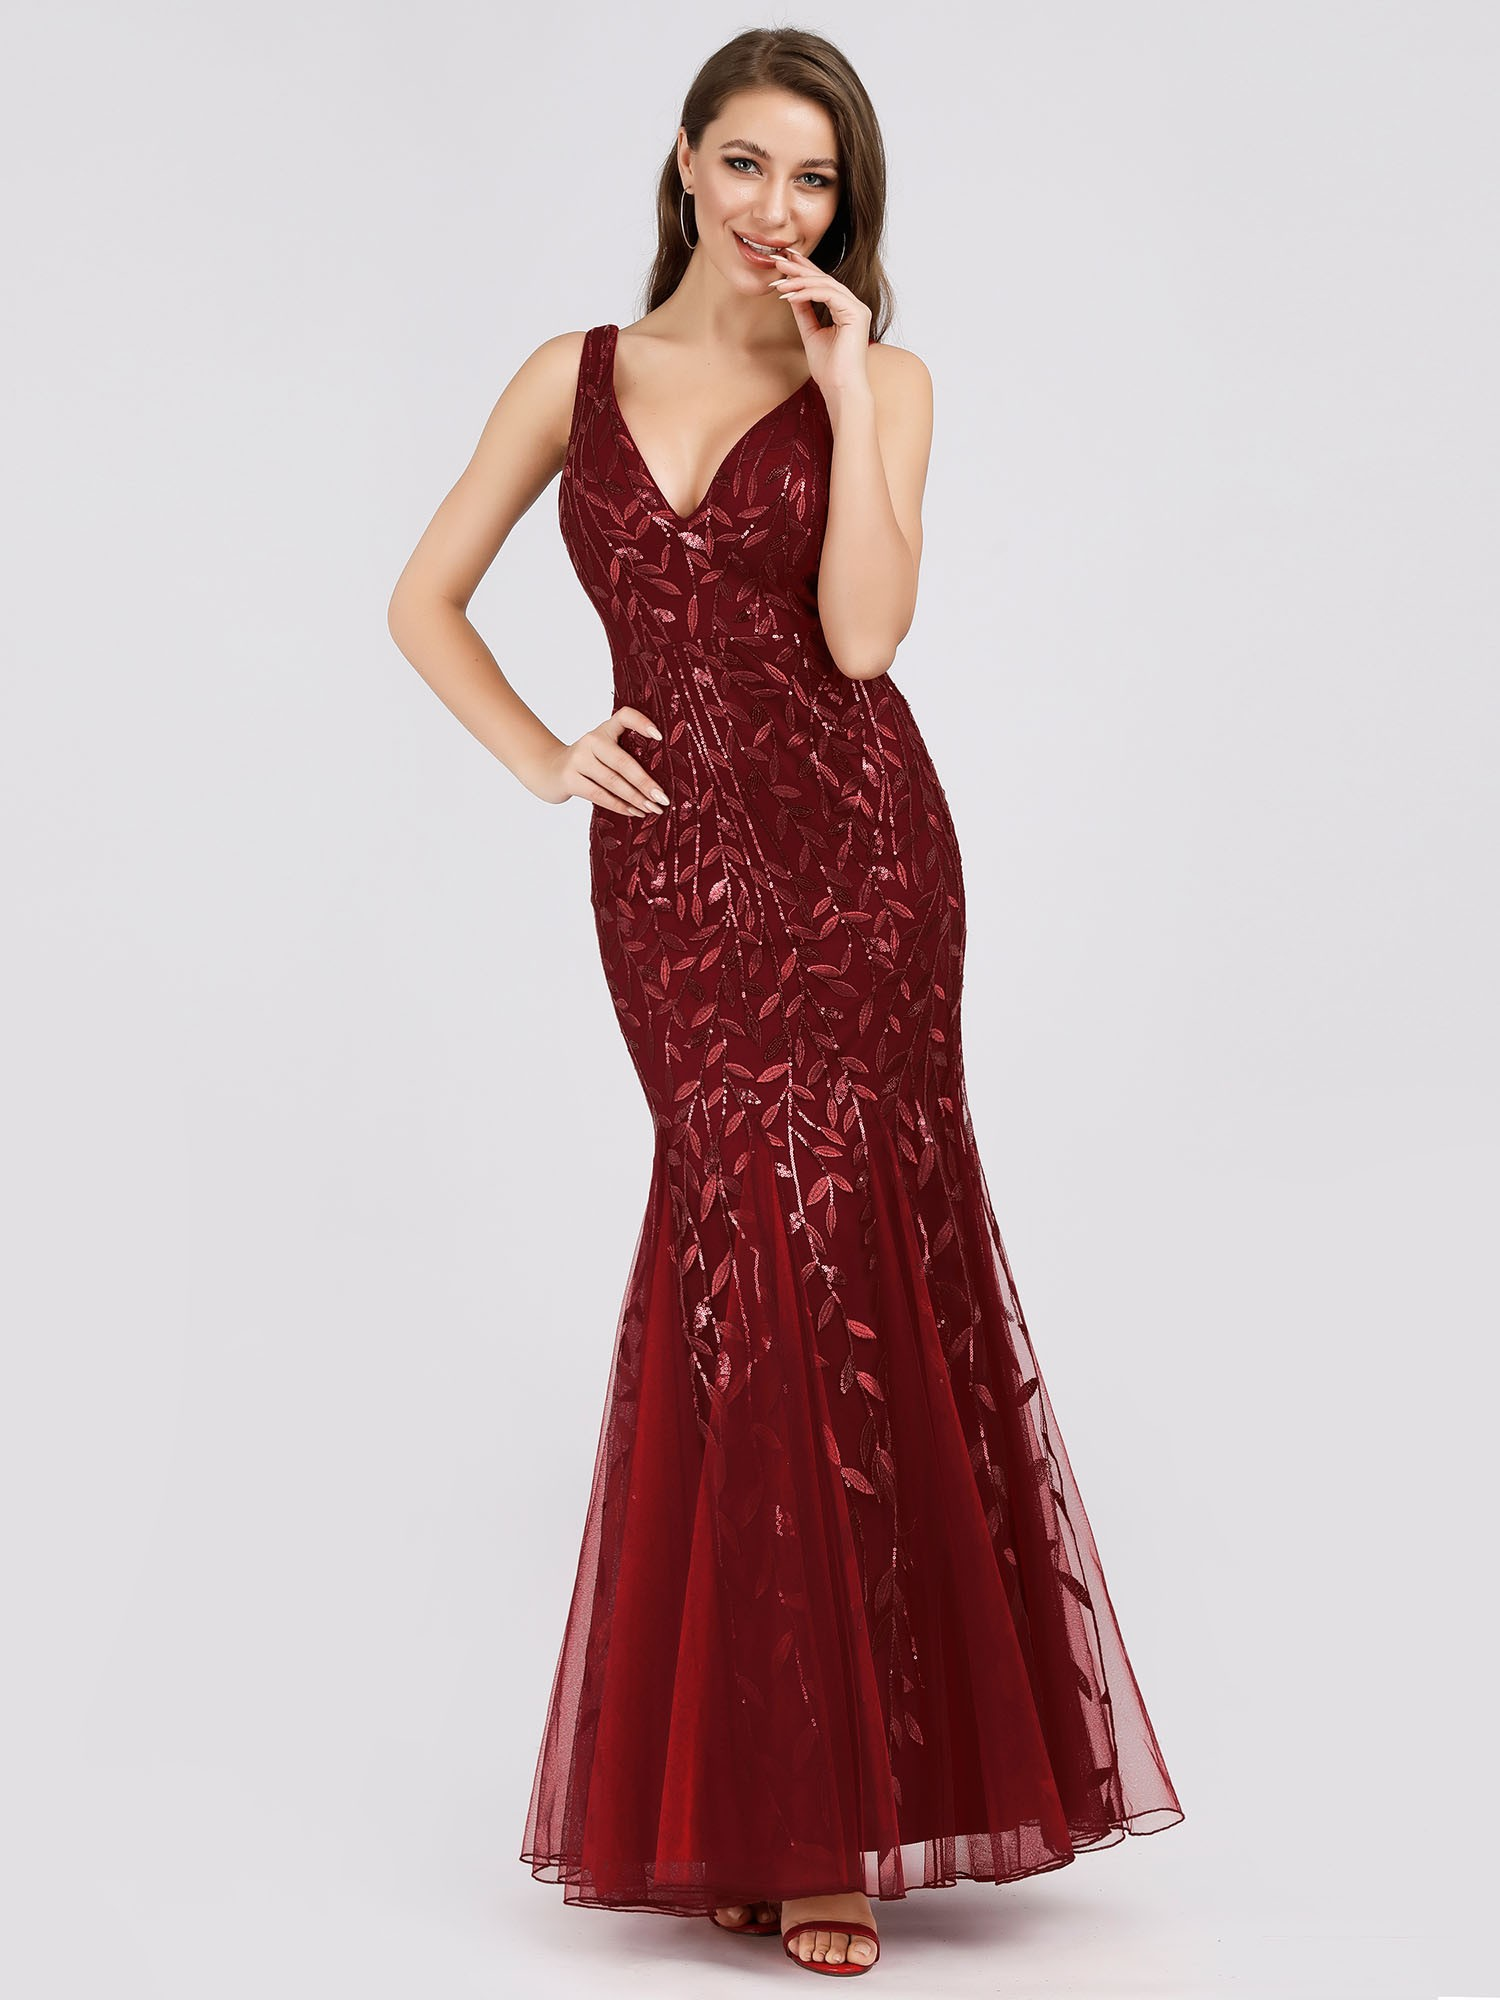 Ever-Pretty US Bodycon Cocktail Gowns Sequins Wedding Formal Party Dress 07886